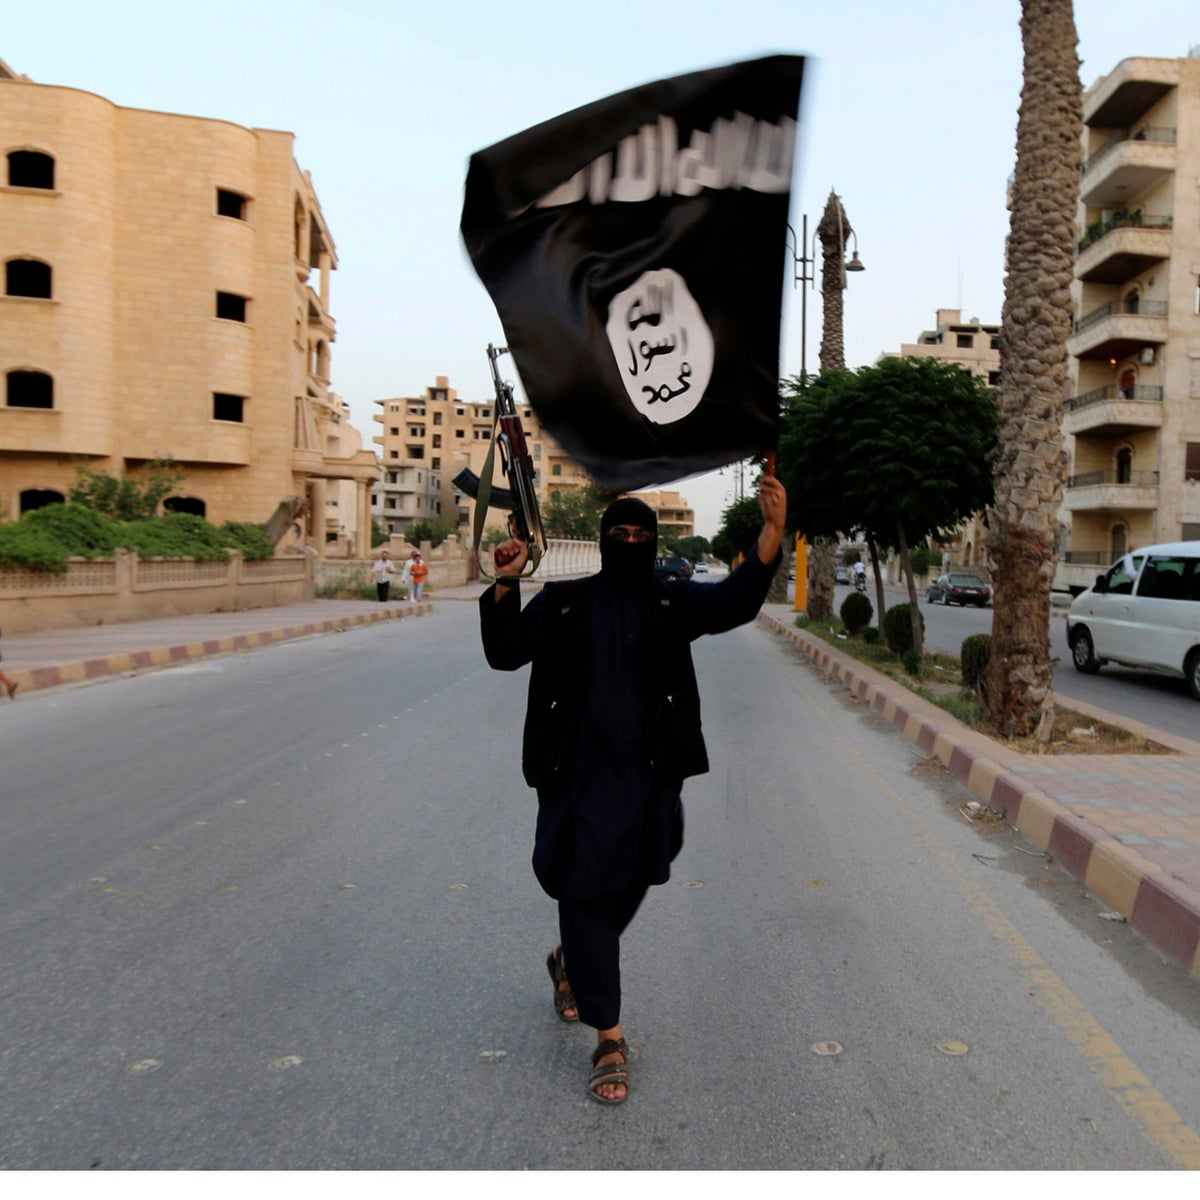 An Islamic State member waves the group's flag in Raqqa, Syria, June 29, 2014.